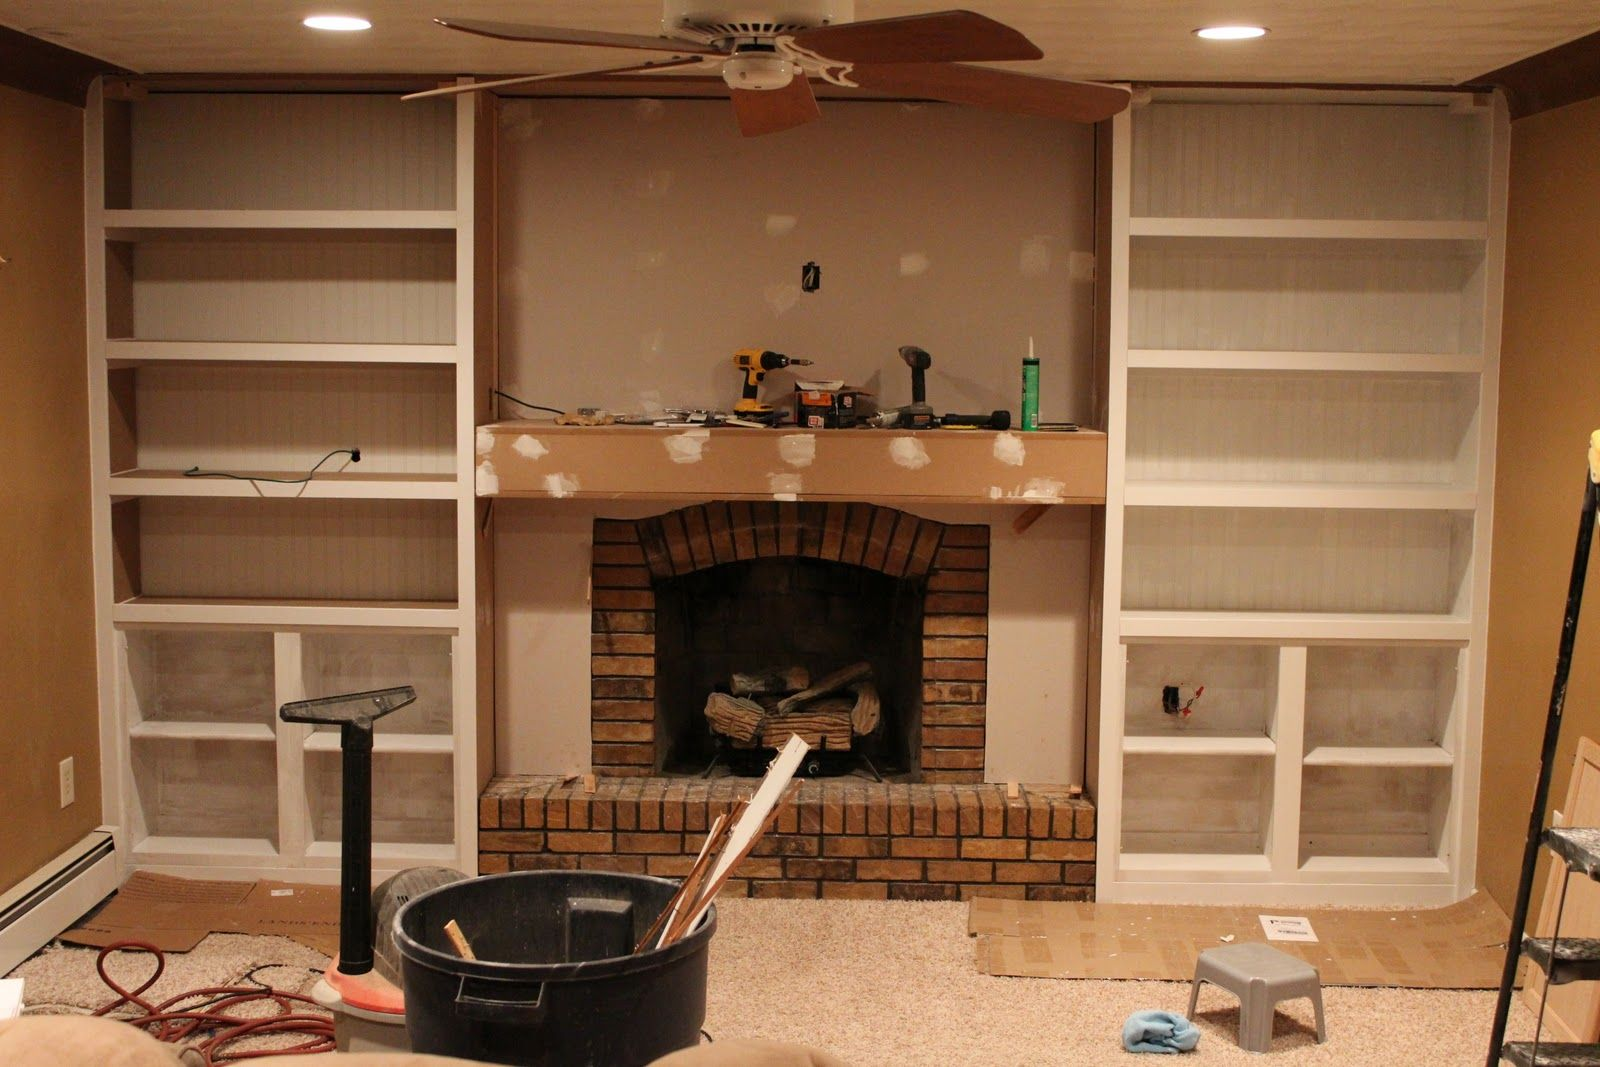 Diy show off brick wall fireplaces wall fireplaces and bricks